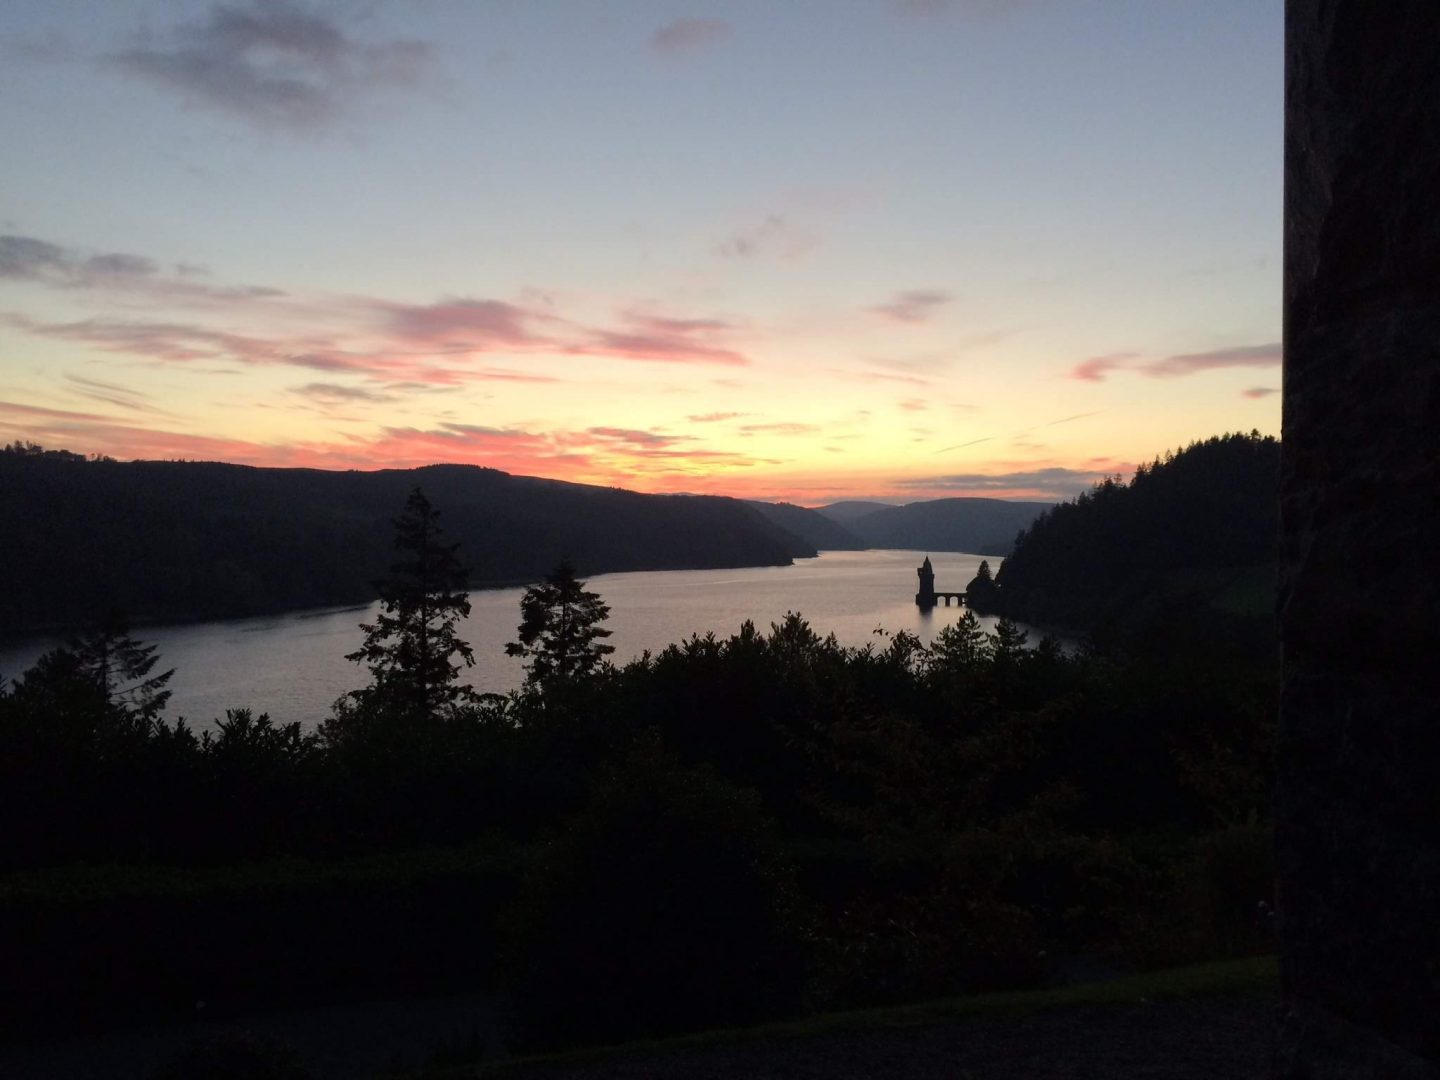 Sunset at Lake Vyrnwy, Wales